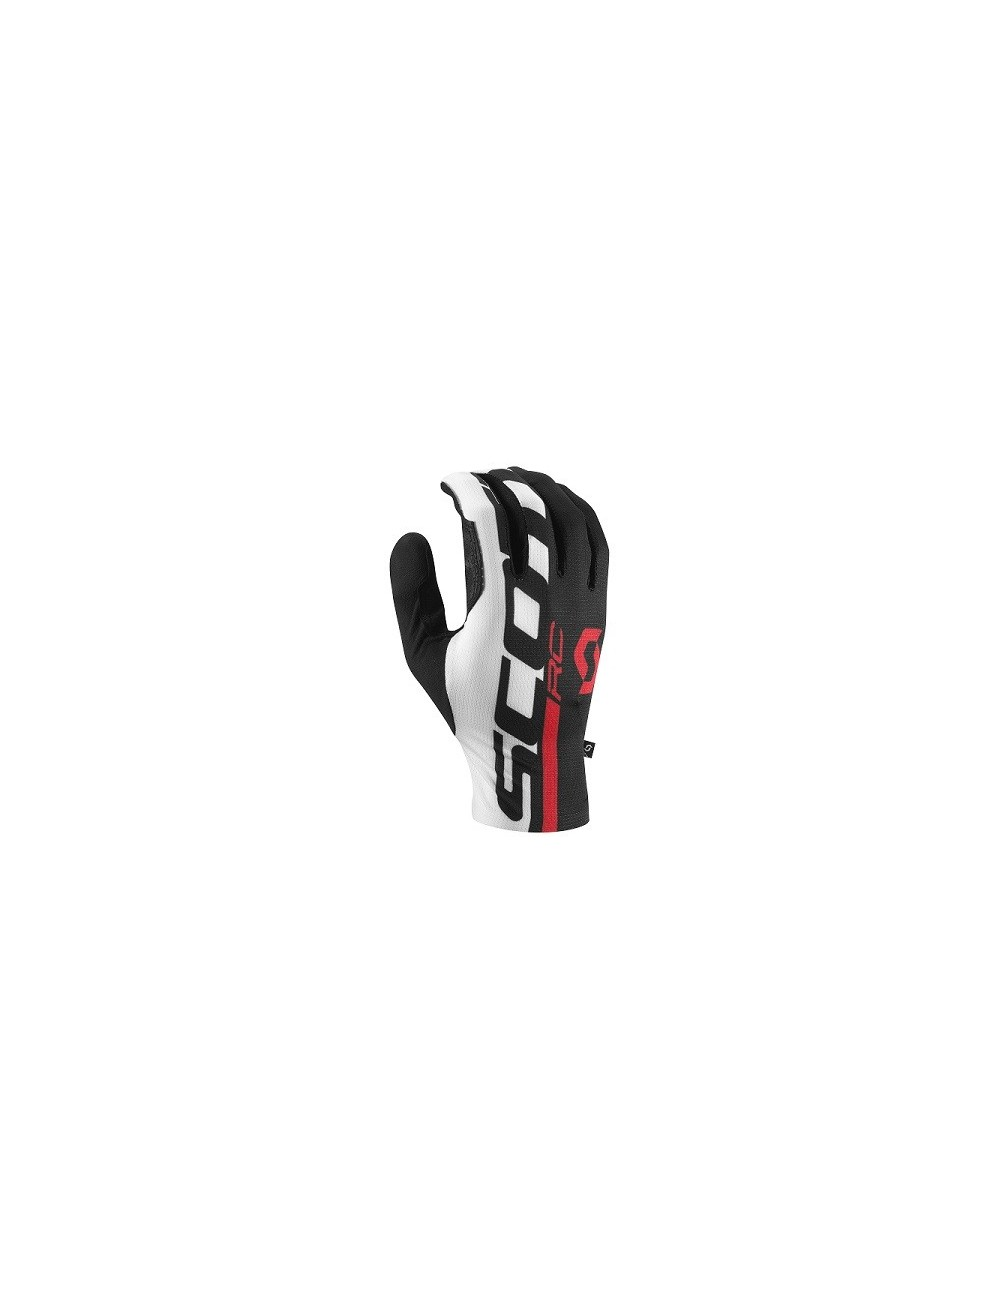 LUVAS SCOTT RC PRO C/DEDOS BLK/RED - 2016